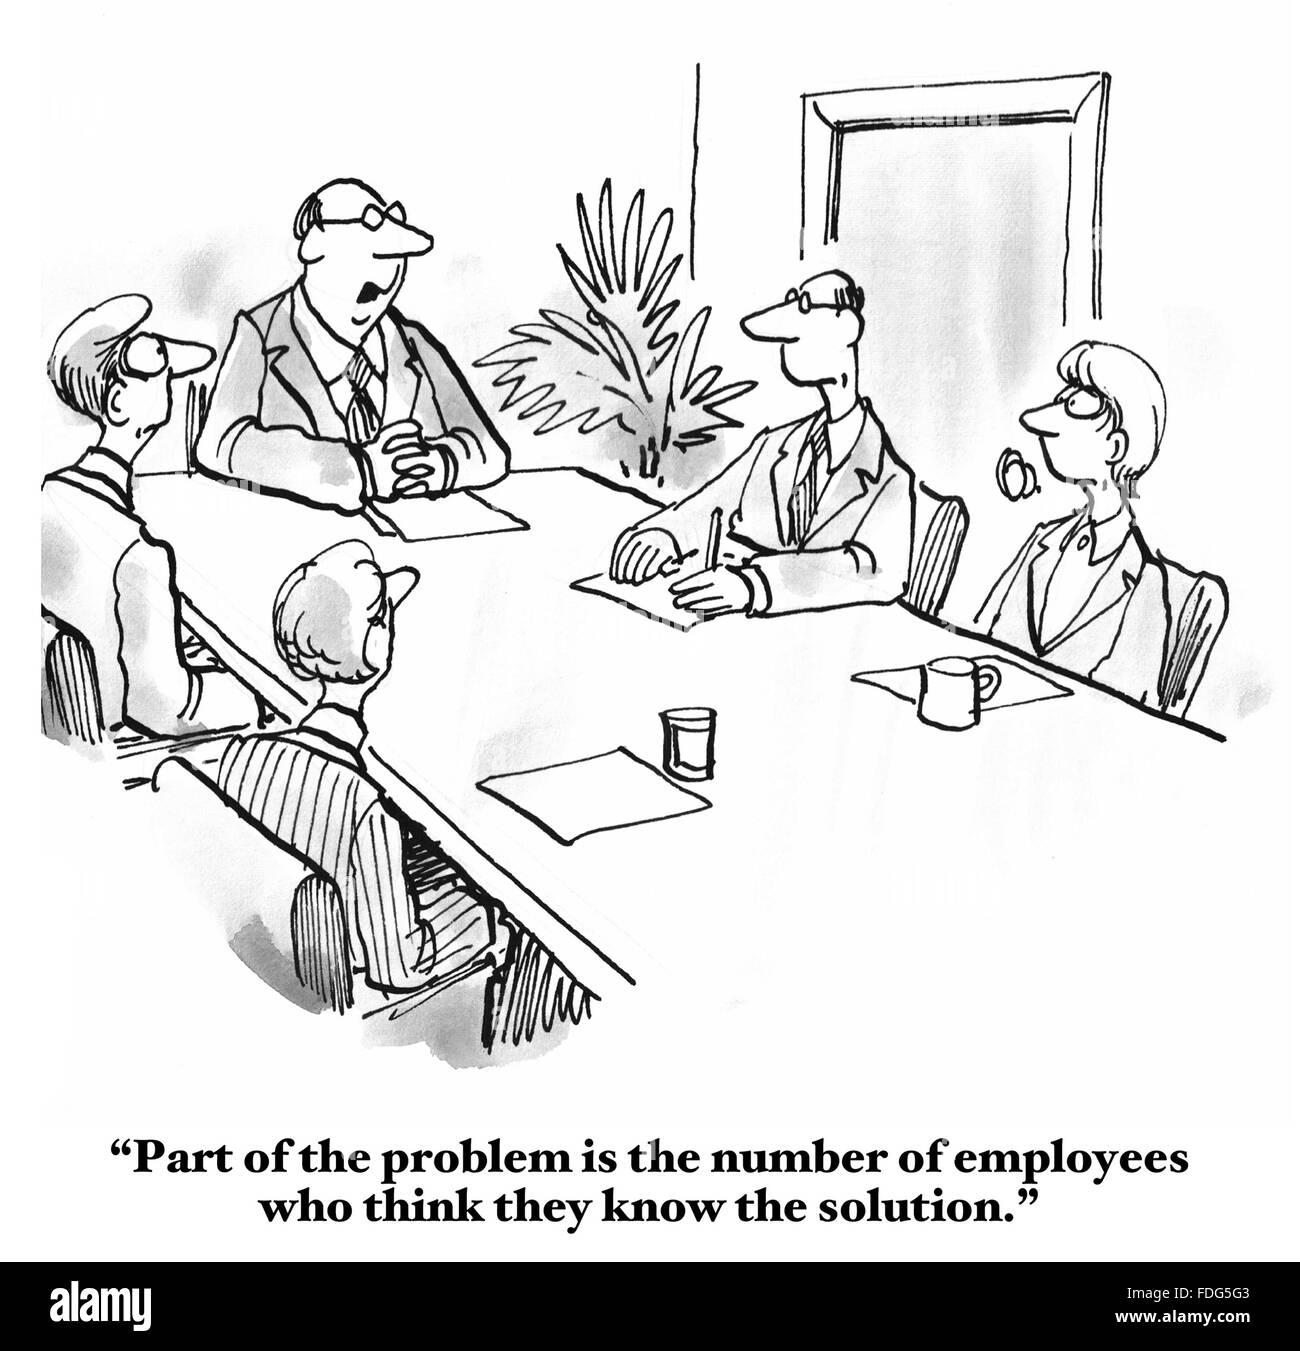 Cartoon of a business meeting where the boss is upset that the employees all think they know the answer to the problem. Stock Photo